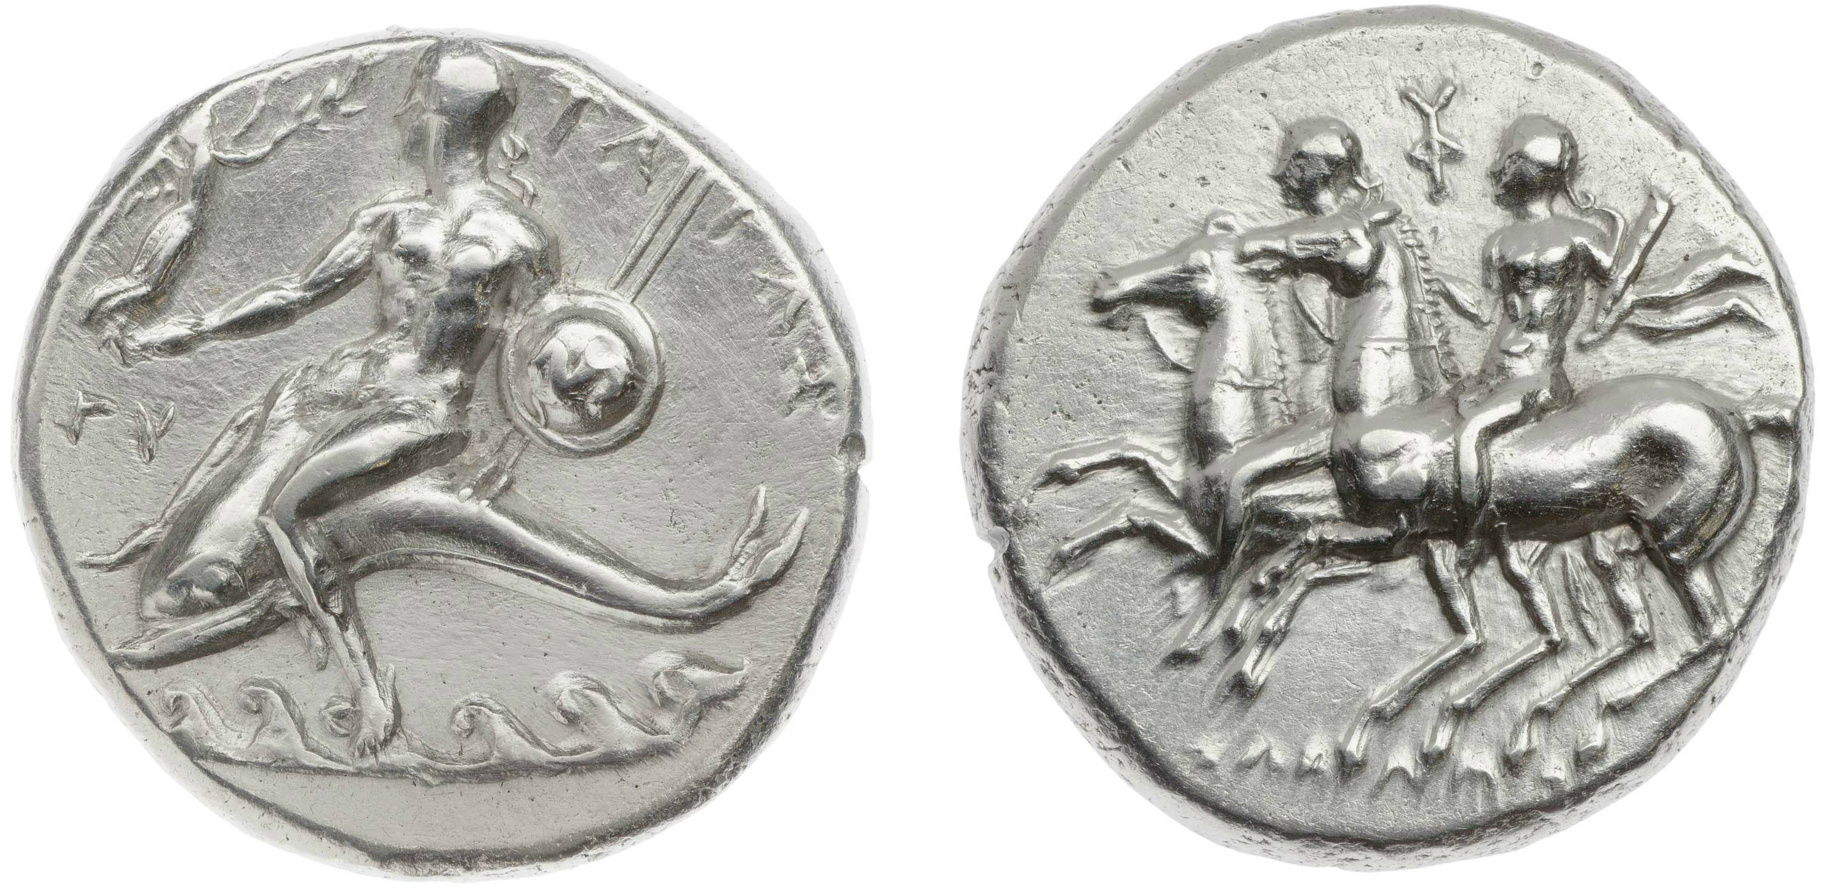 Stater of Sodamos, showing Dioscuri,cr. 281–272 BC, Taras (Tarentum), Calabria (Hellenistic)